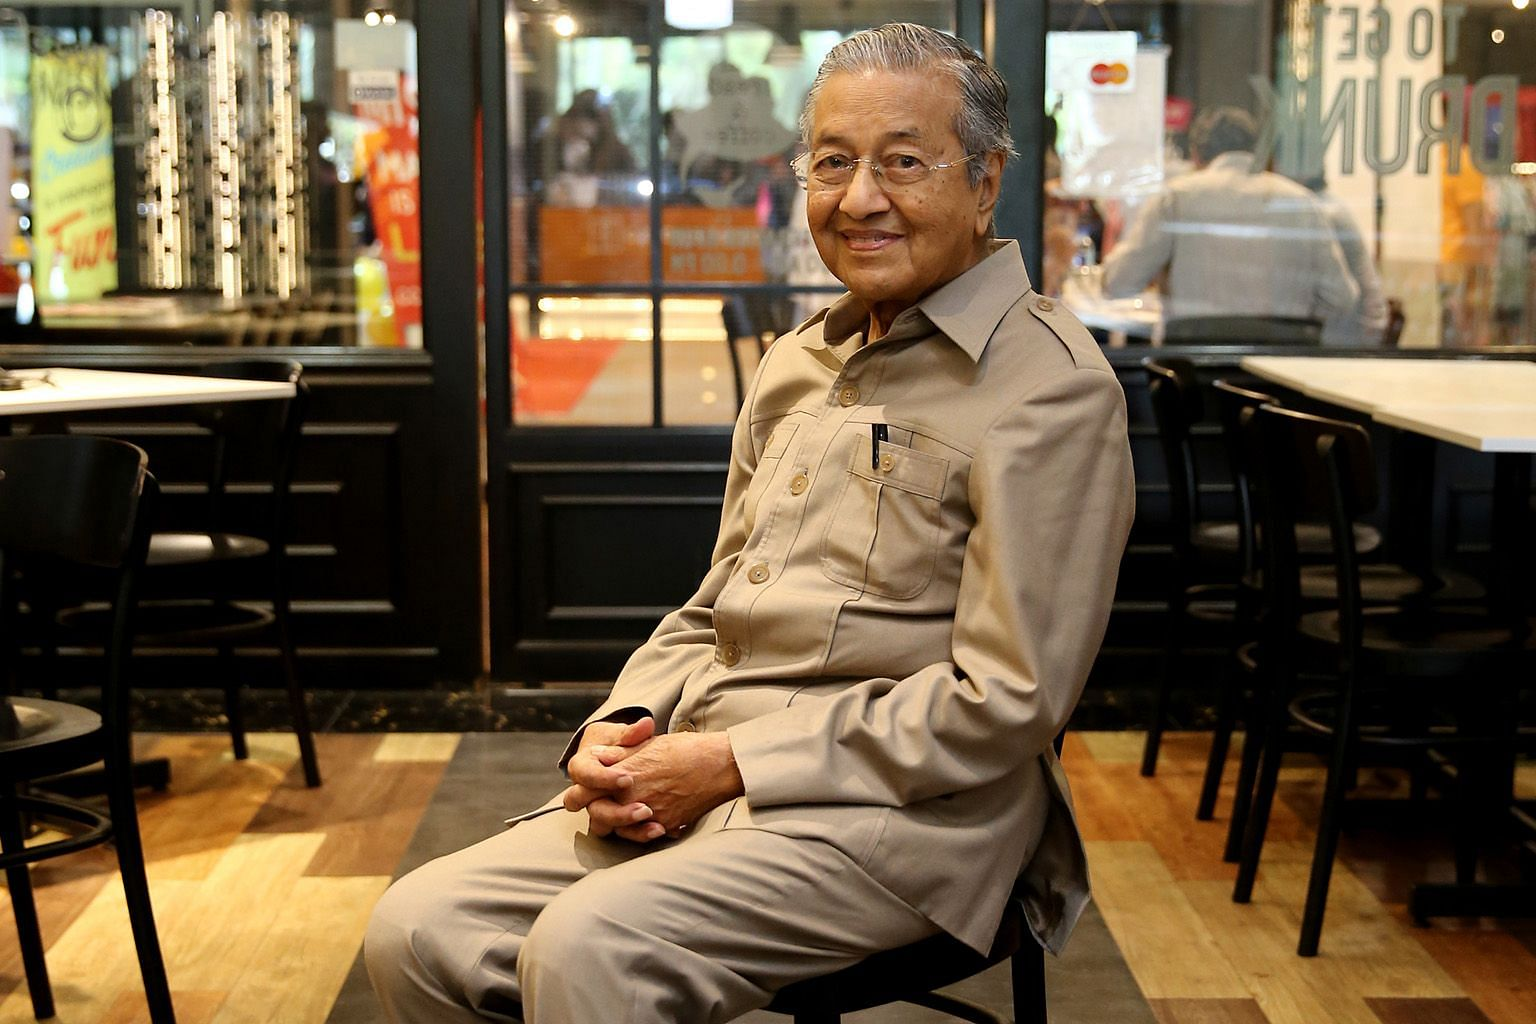 Tun Dr Mahathir Mohamad at The Loaf bakery-cafe in Cyberjaya last Wednesday. He now leads Malaysia's opposition alliance and his schedule in the run-up to the general election has been punishing.